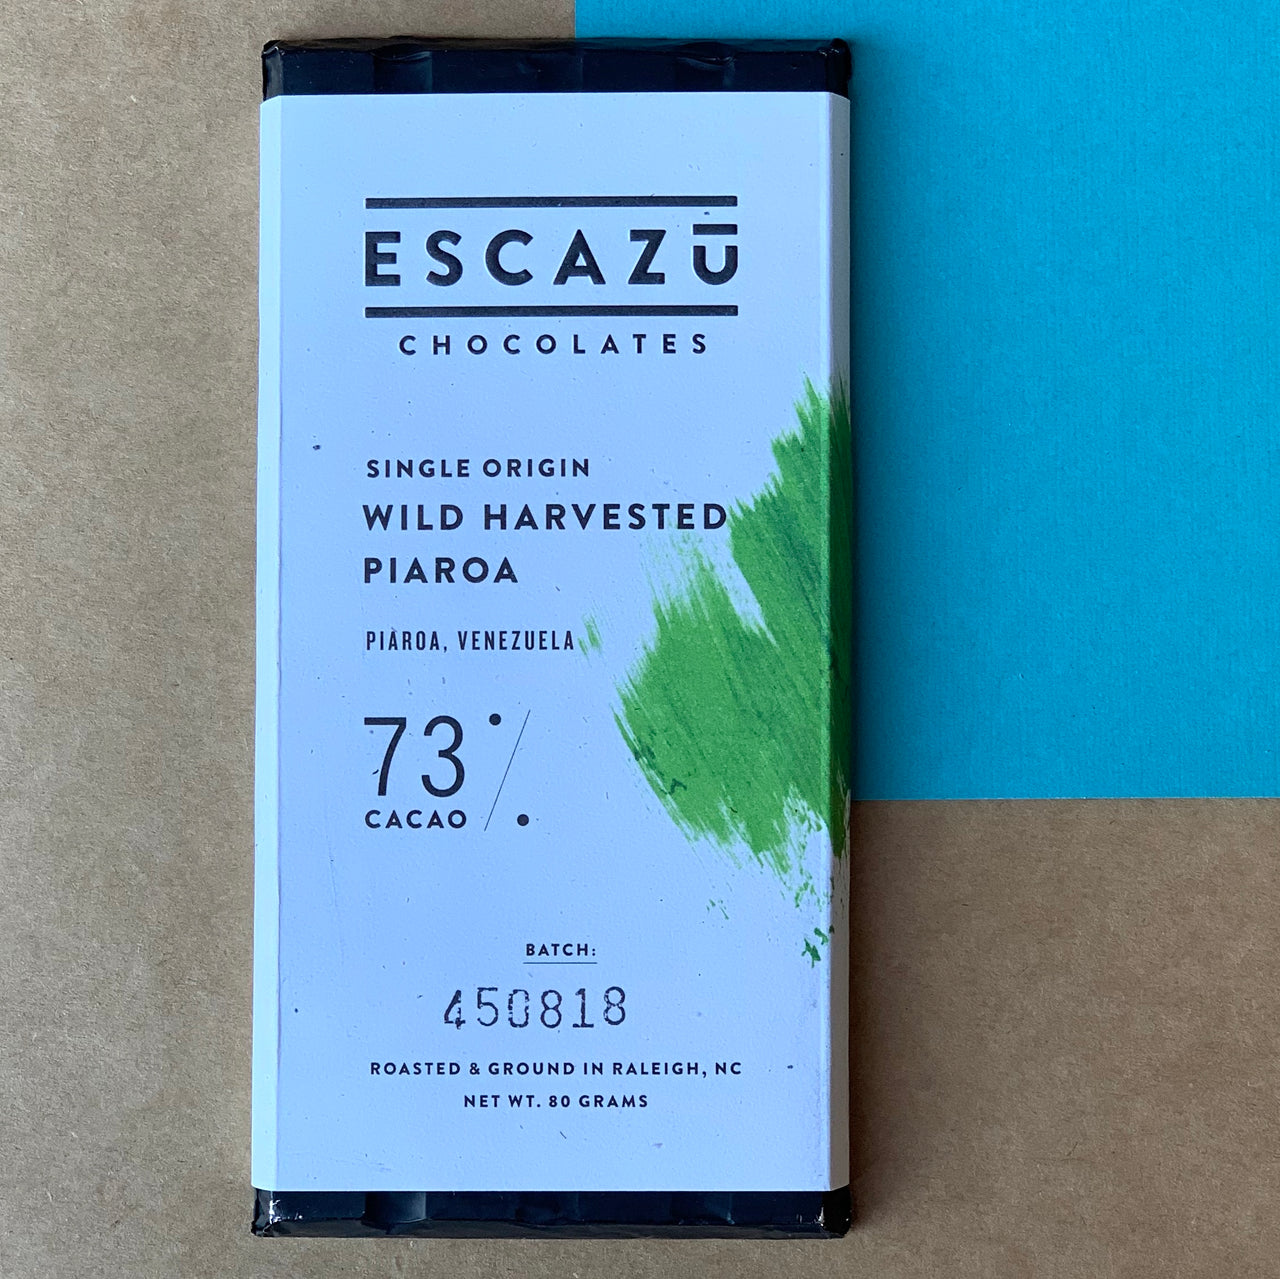 This Escazu 73% Dark Chocolate bar was roasted and then crafted in small batches in Raleigh, NC